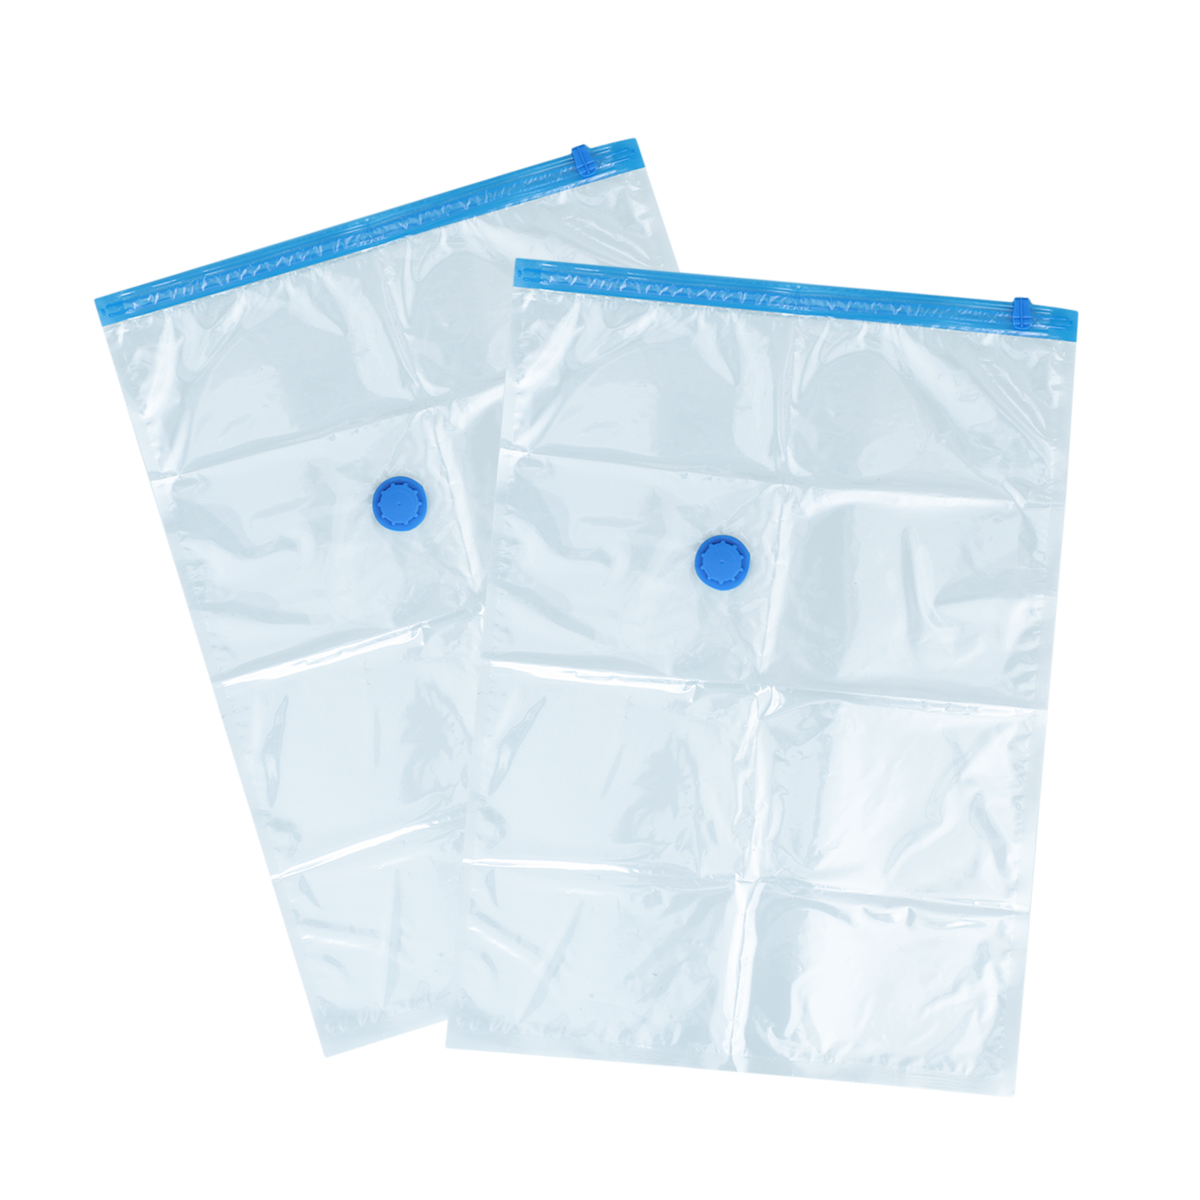 10pcs 70x50cm Compress Bag Saving Space Vacuum Seal Storage Bags for Clothes Blankets Pillows (Transparent)|Vacuum Bag Pumps| |  - title=